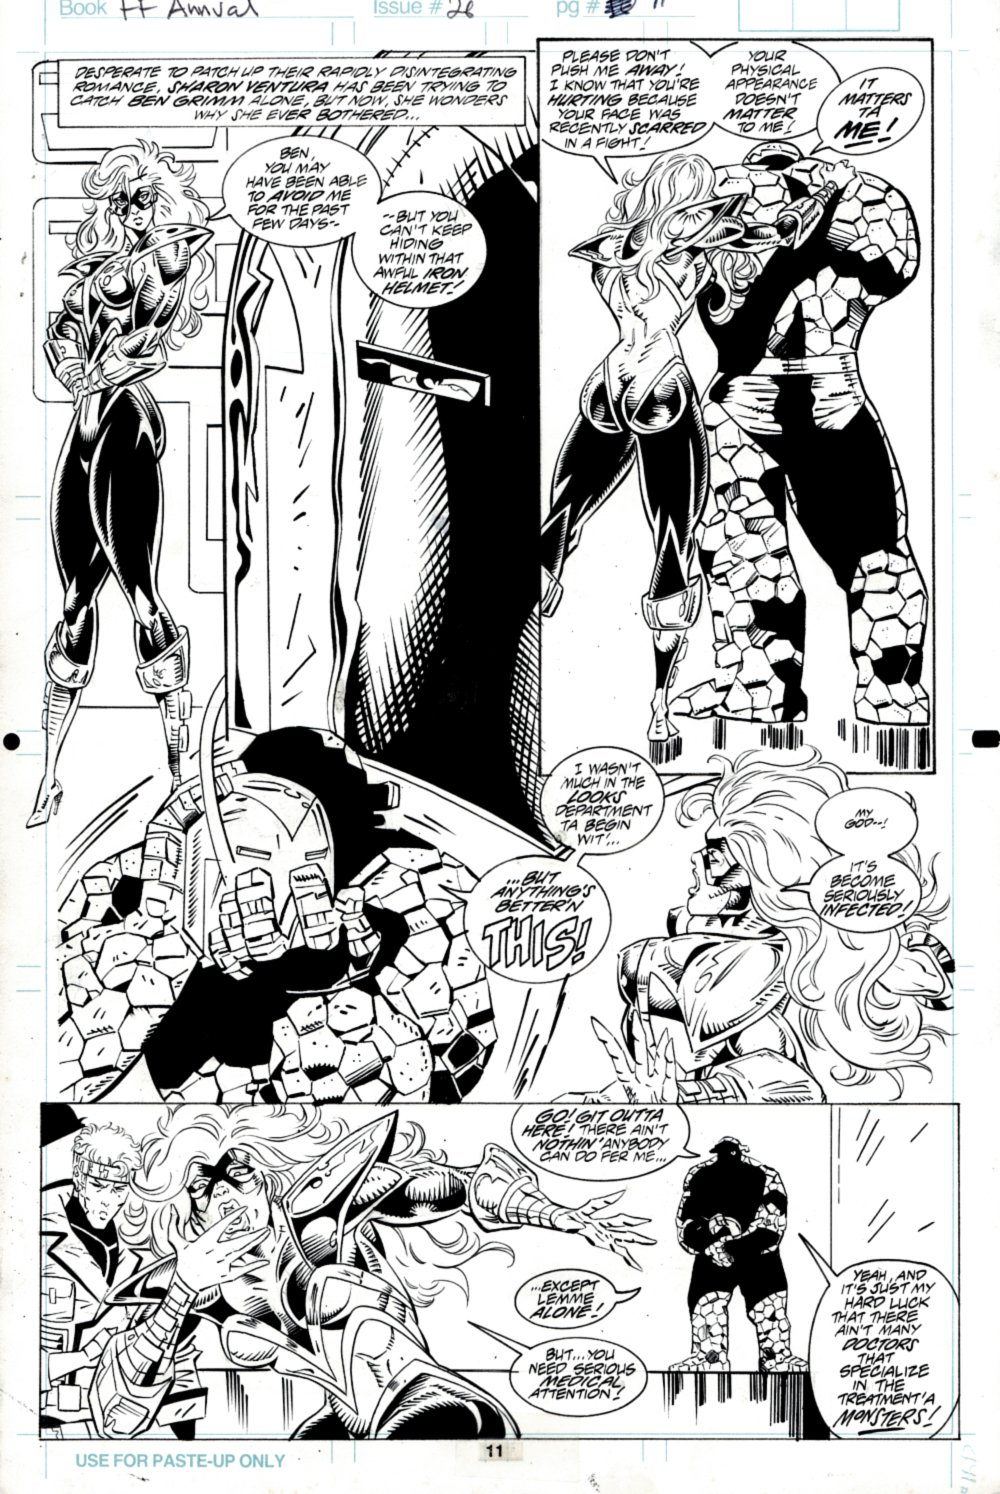 Fantastic Four Annual #26 p 11 (SOLD LIVE ON THE ROMITAMAN ART DROP PODCAST ON 10-9-2021